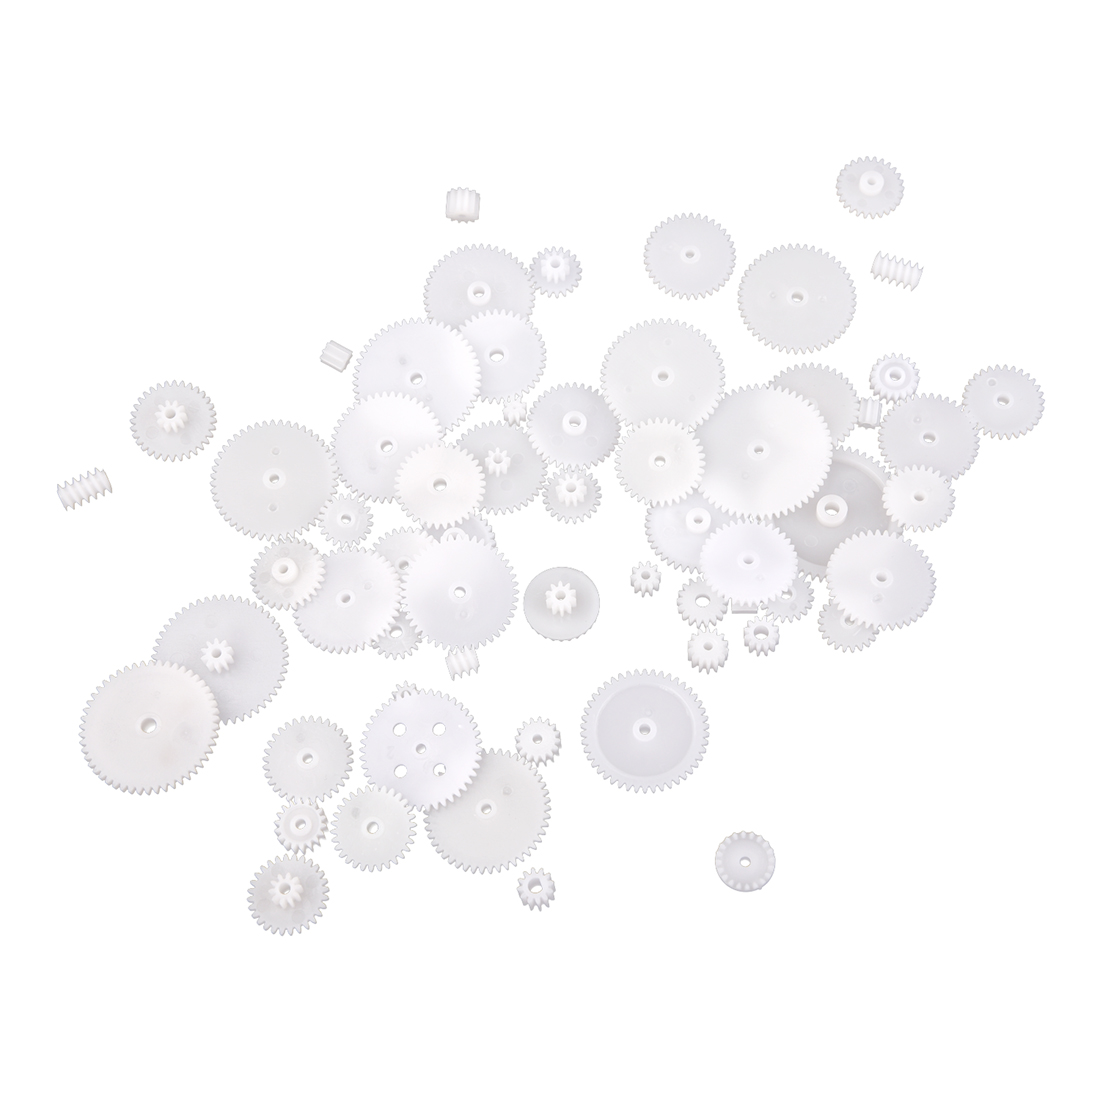 58 Styles Plastic Gears All Module Robot Parts For DIY Arduino Accessories MRE